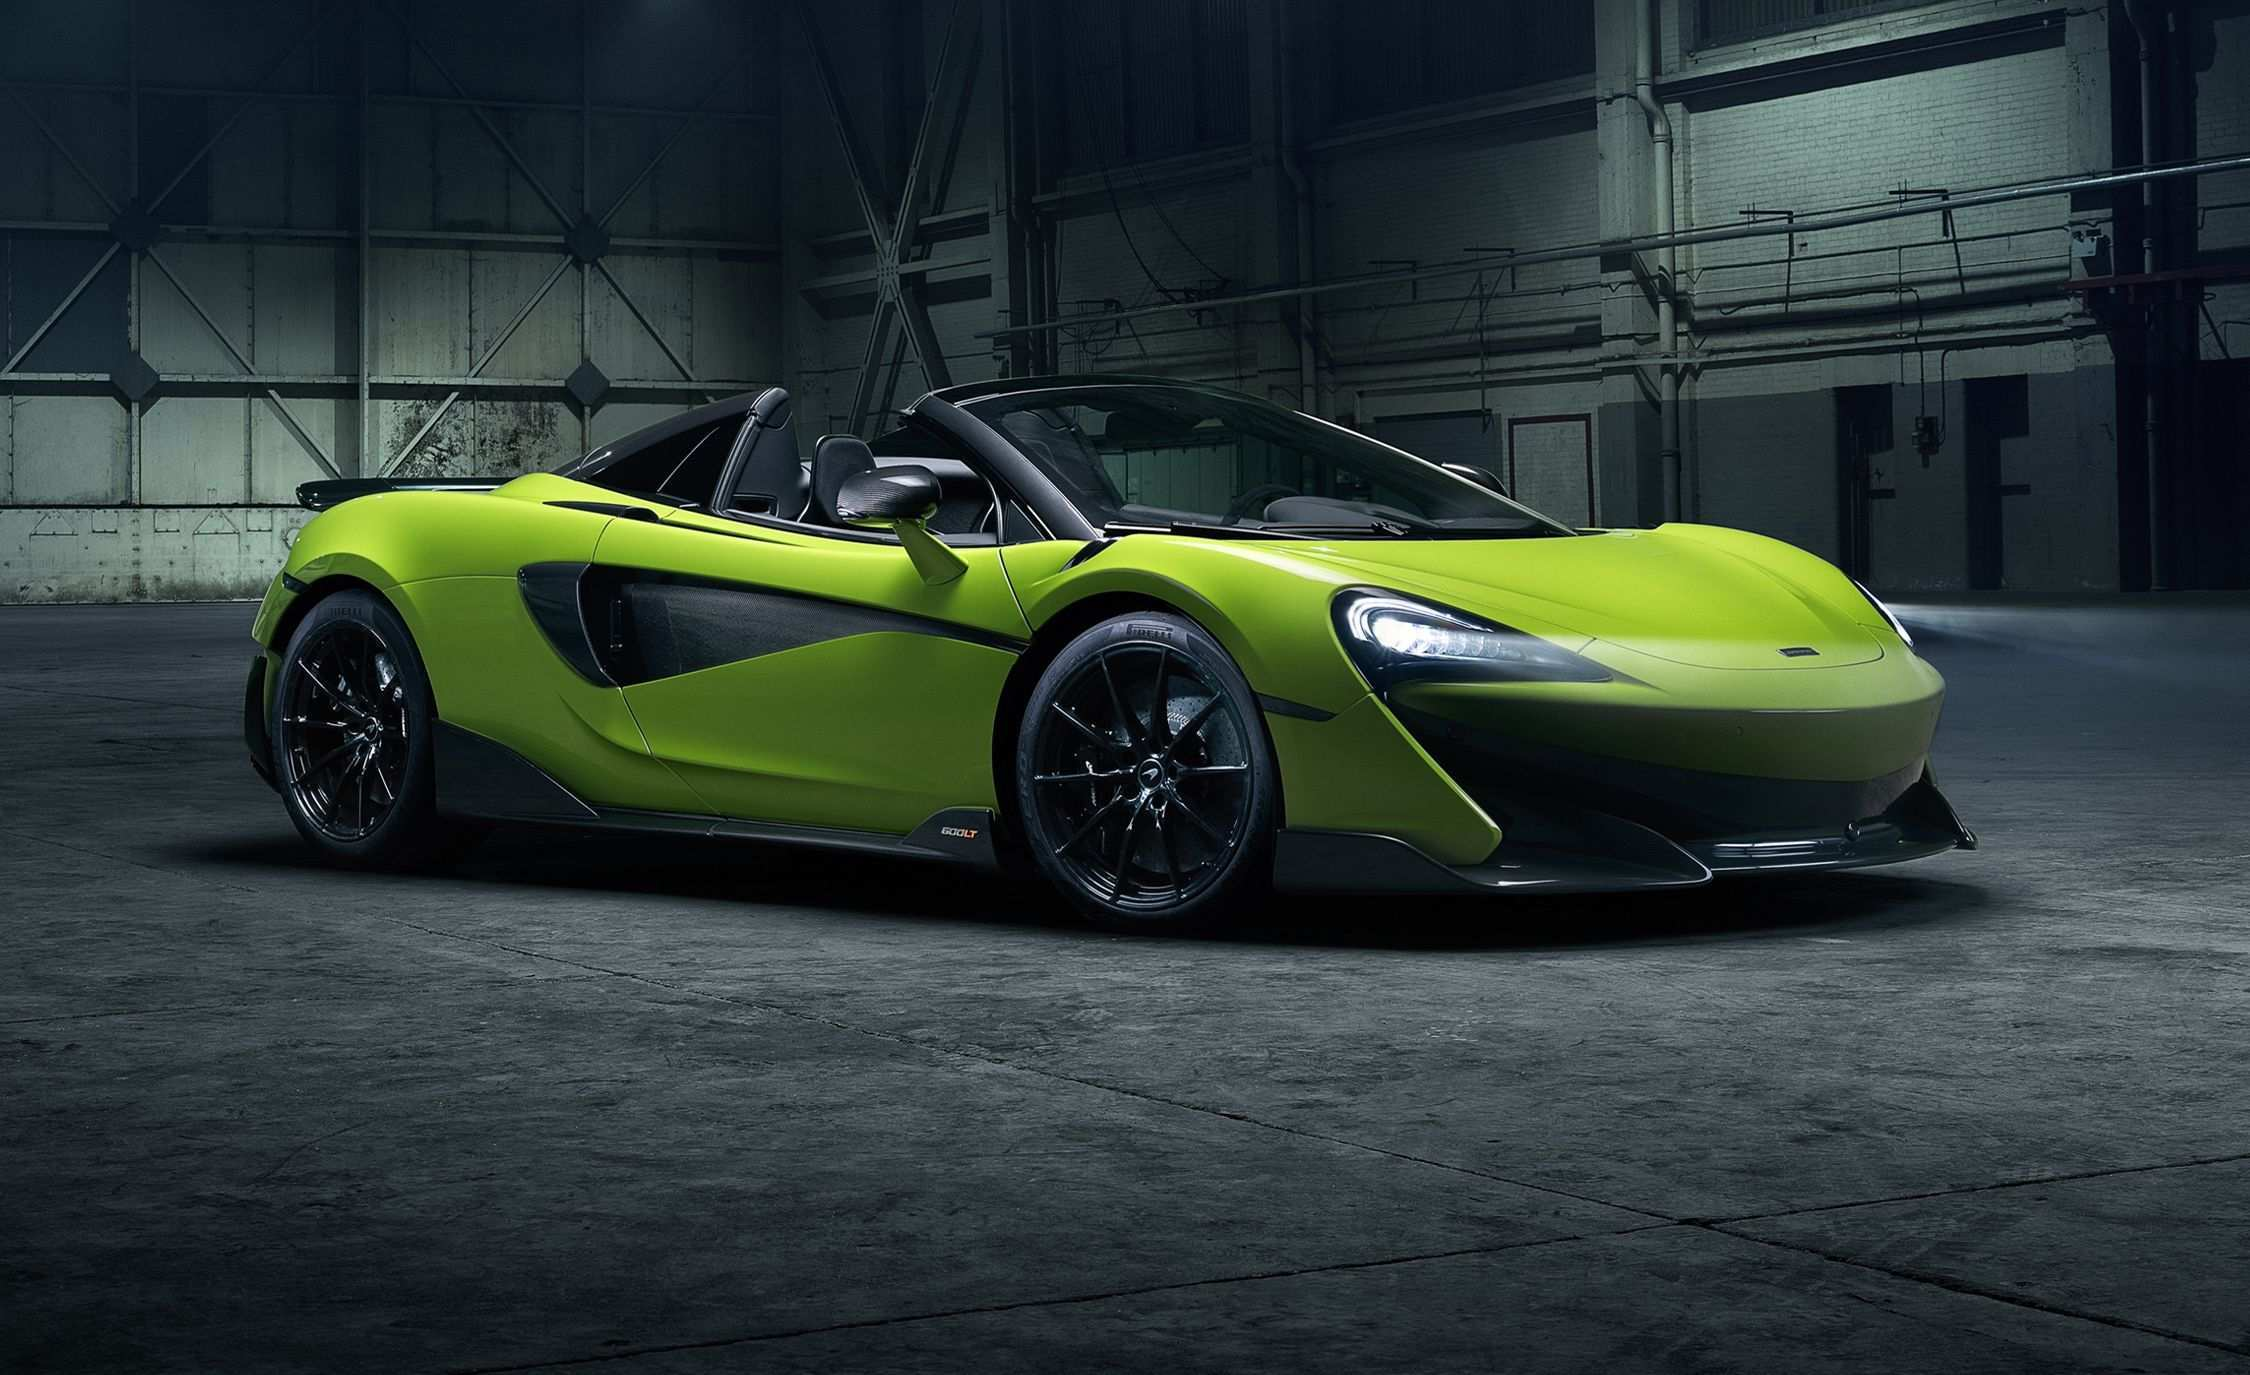 48 Great 2019 Mclaren 600Lt Pictures for 2019 Mclaren 600Lt